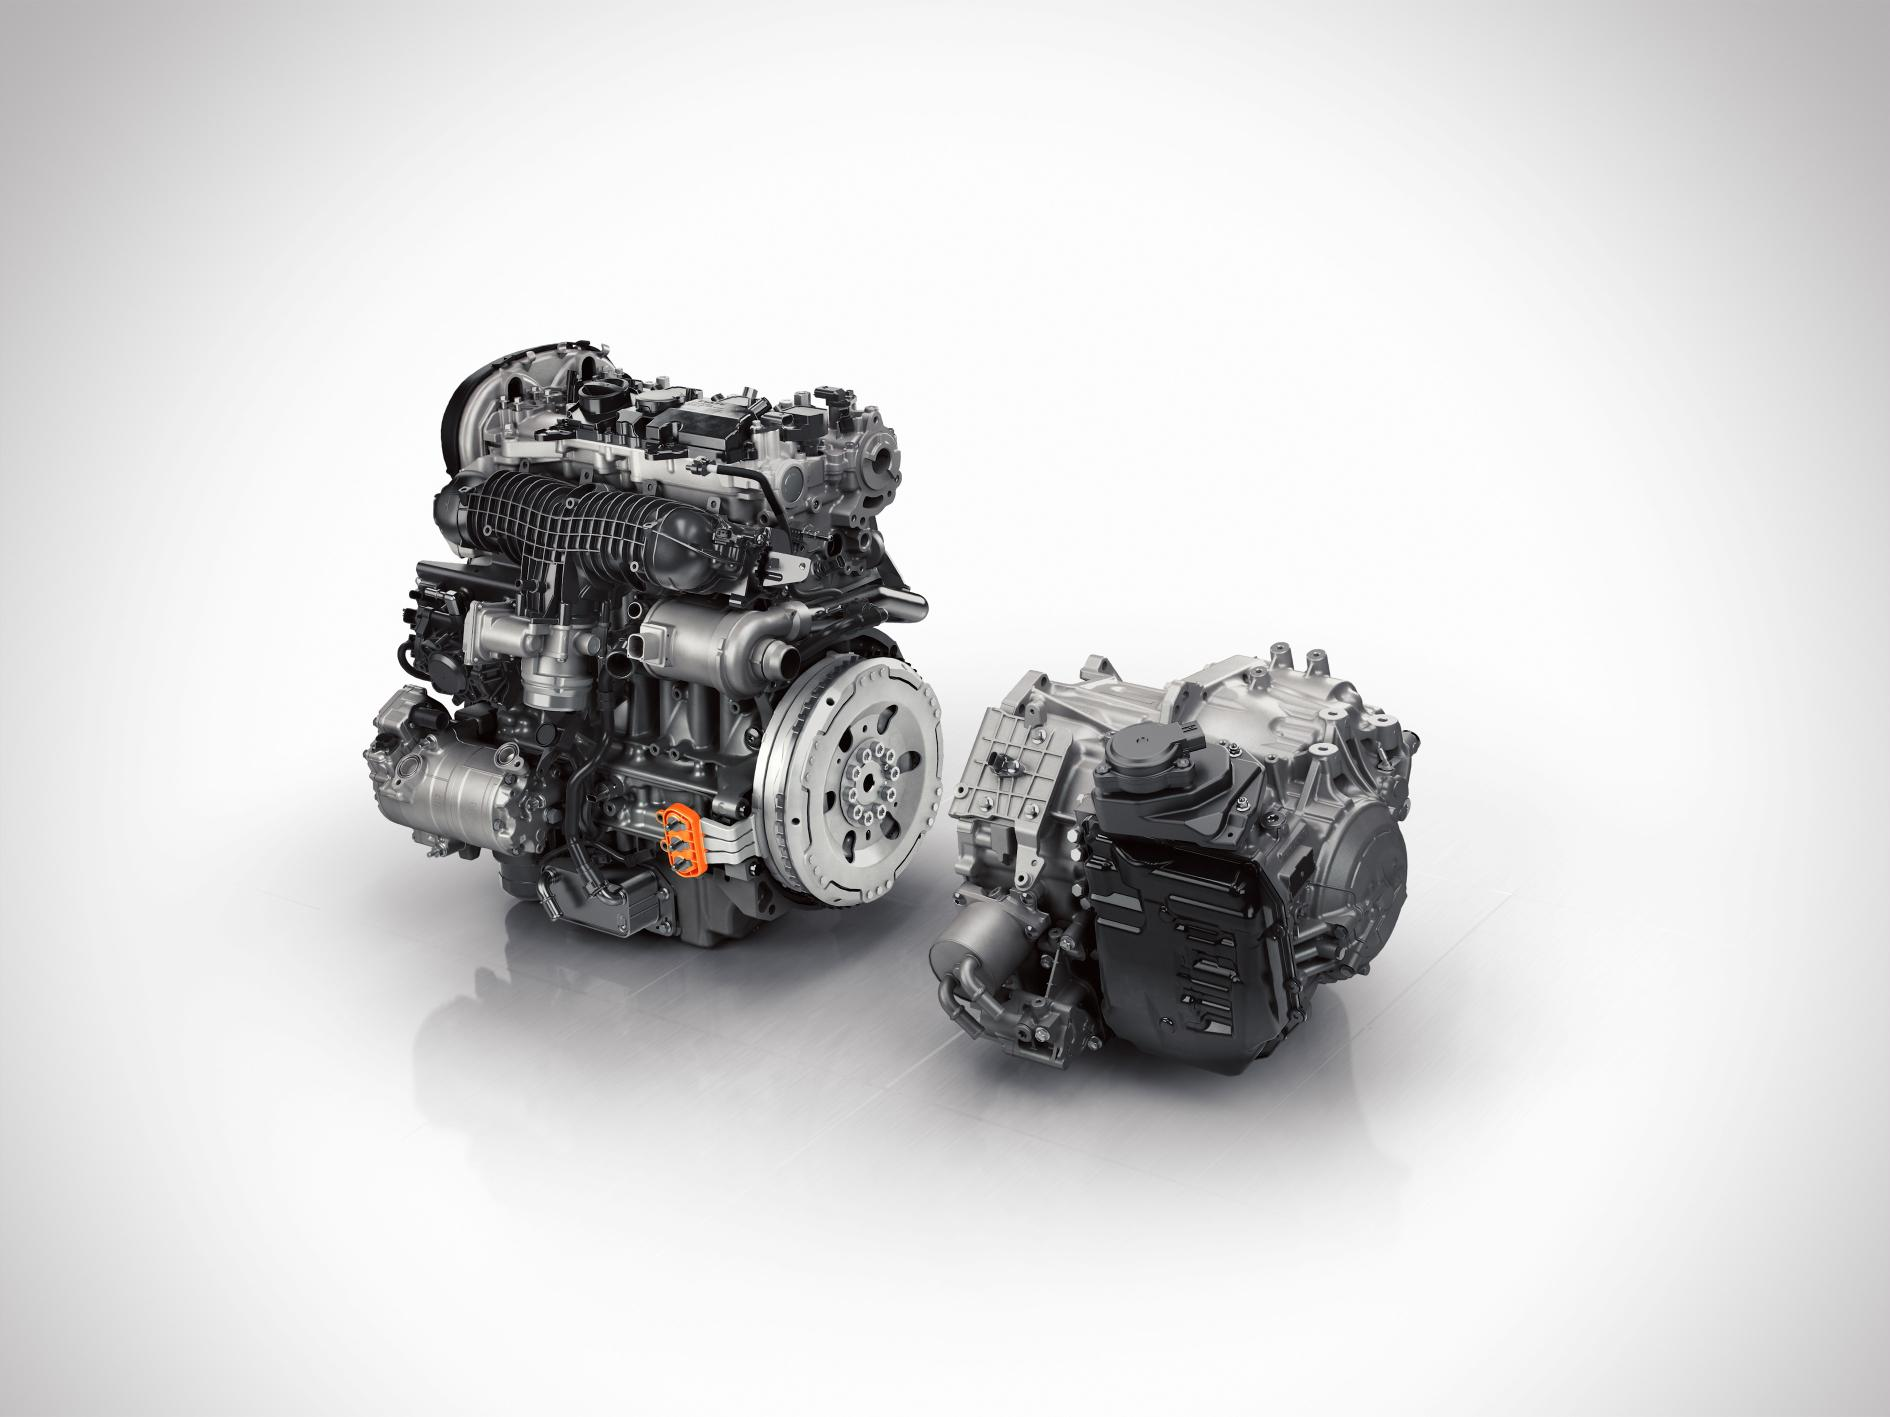 Volvo Suv Used >> 2015 Volvo XC90 T8 Twin Engine Plug-In Hybrid Variant Announced - autoevolution